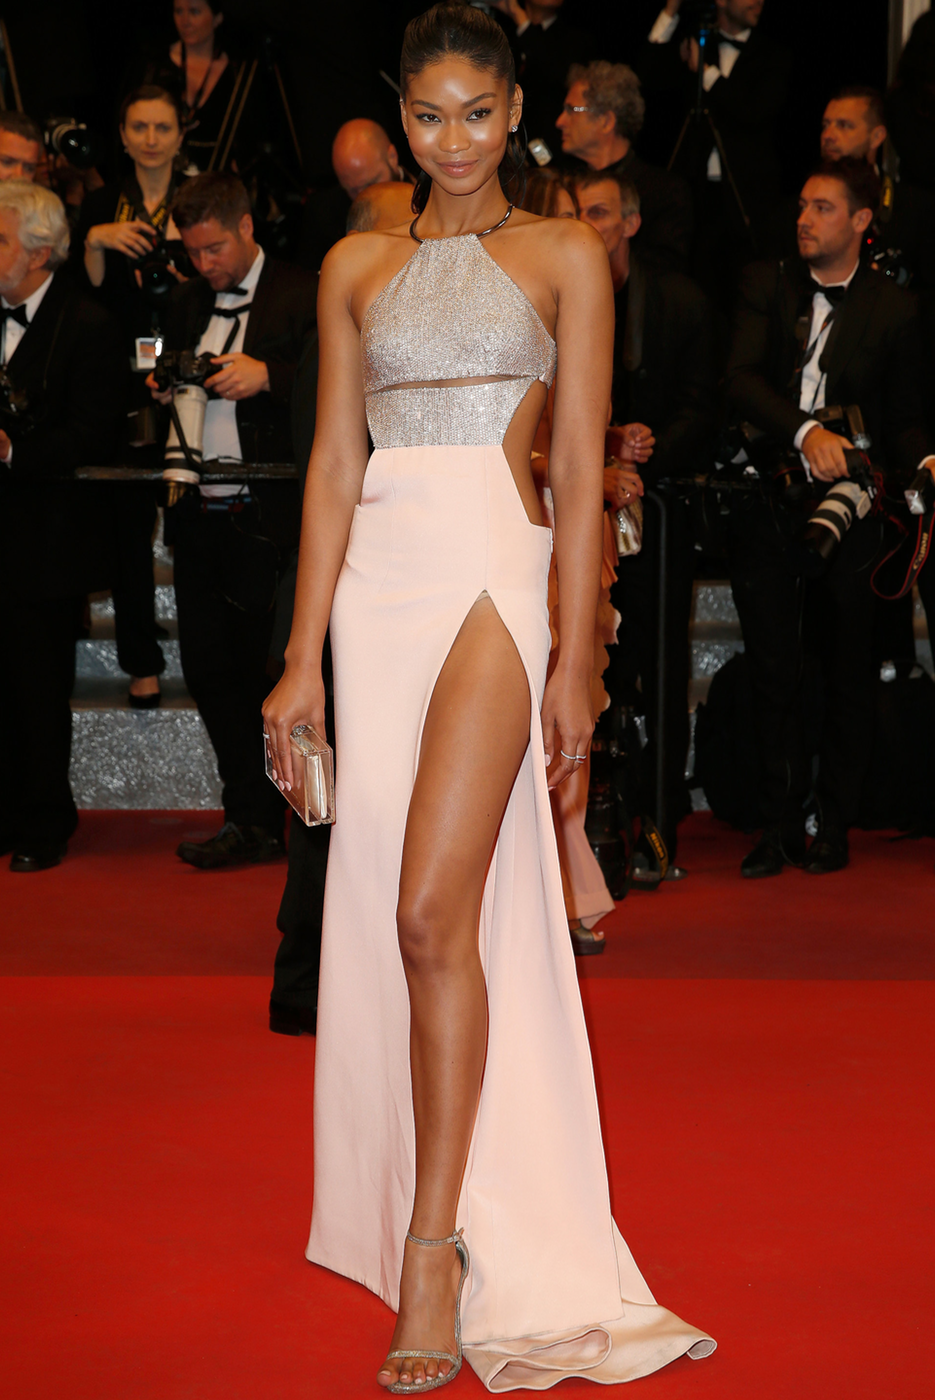 Chanel Iman 2016 Cannes Film Festival